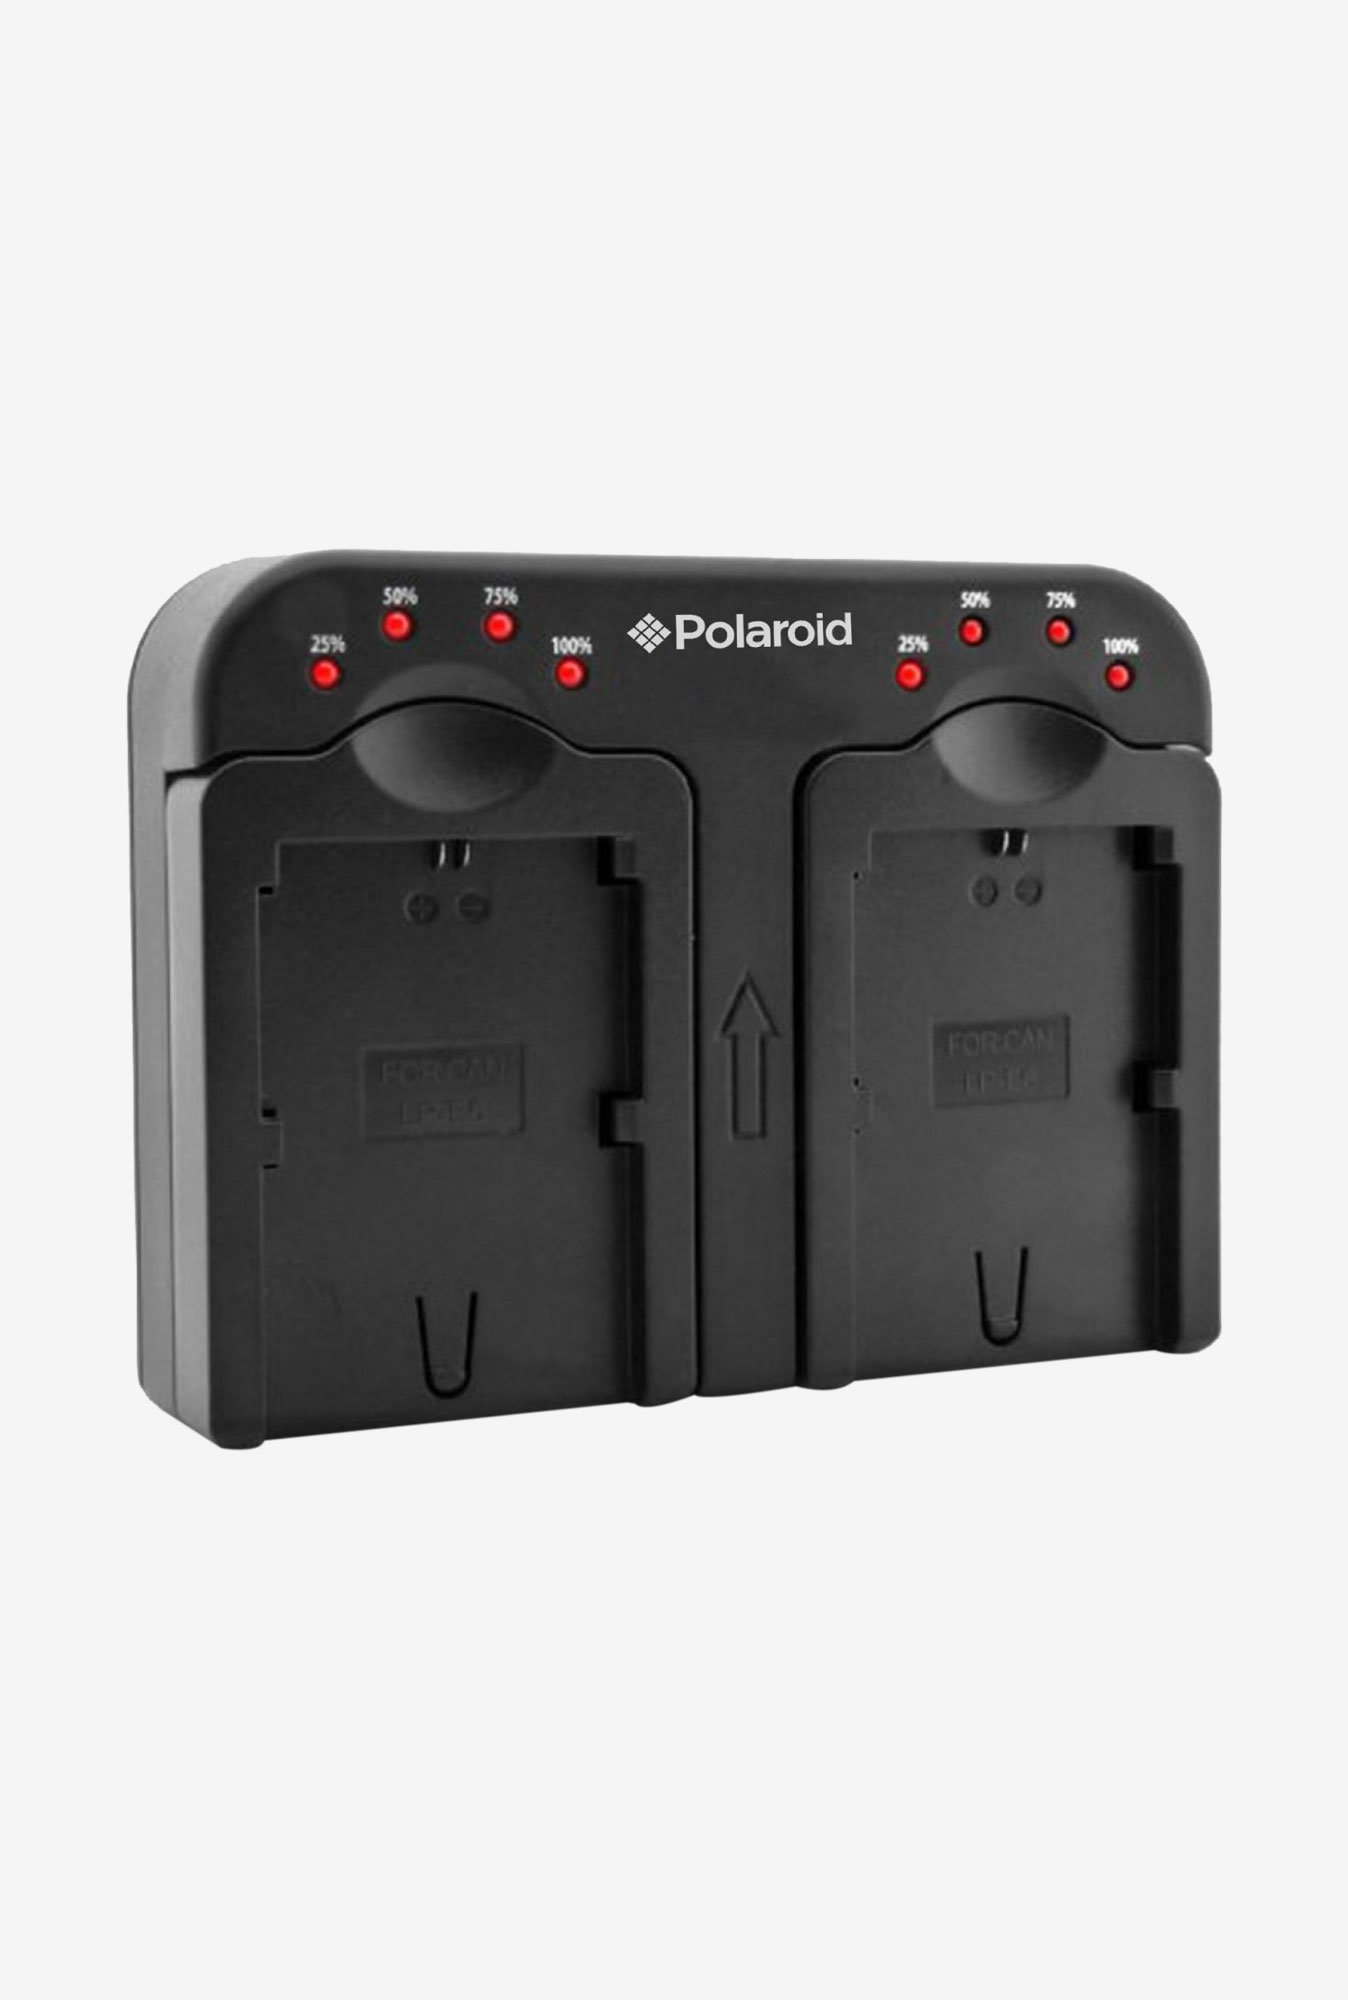 Polaroid Double Battery Charger Charge 2 Batteries At The Same Time